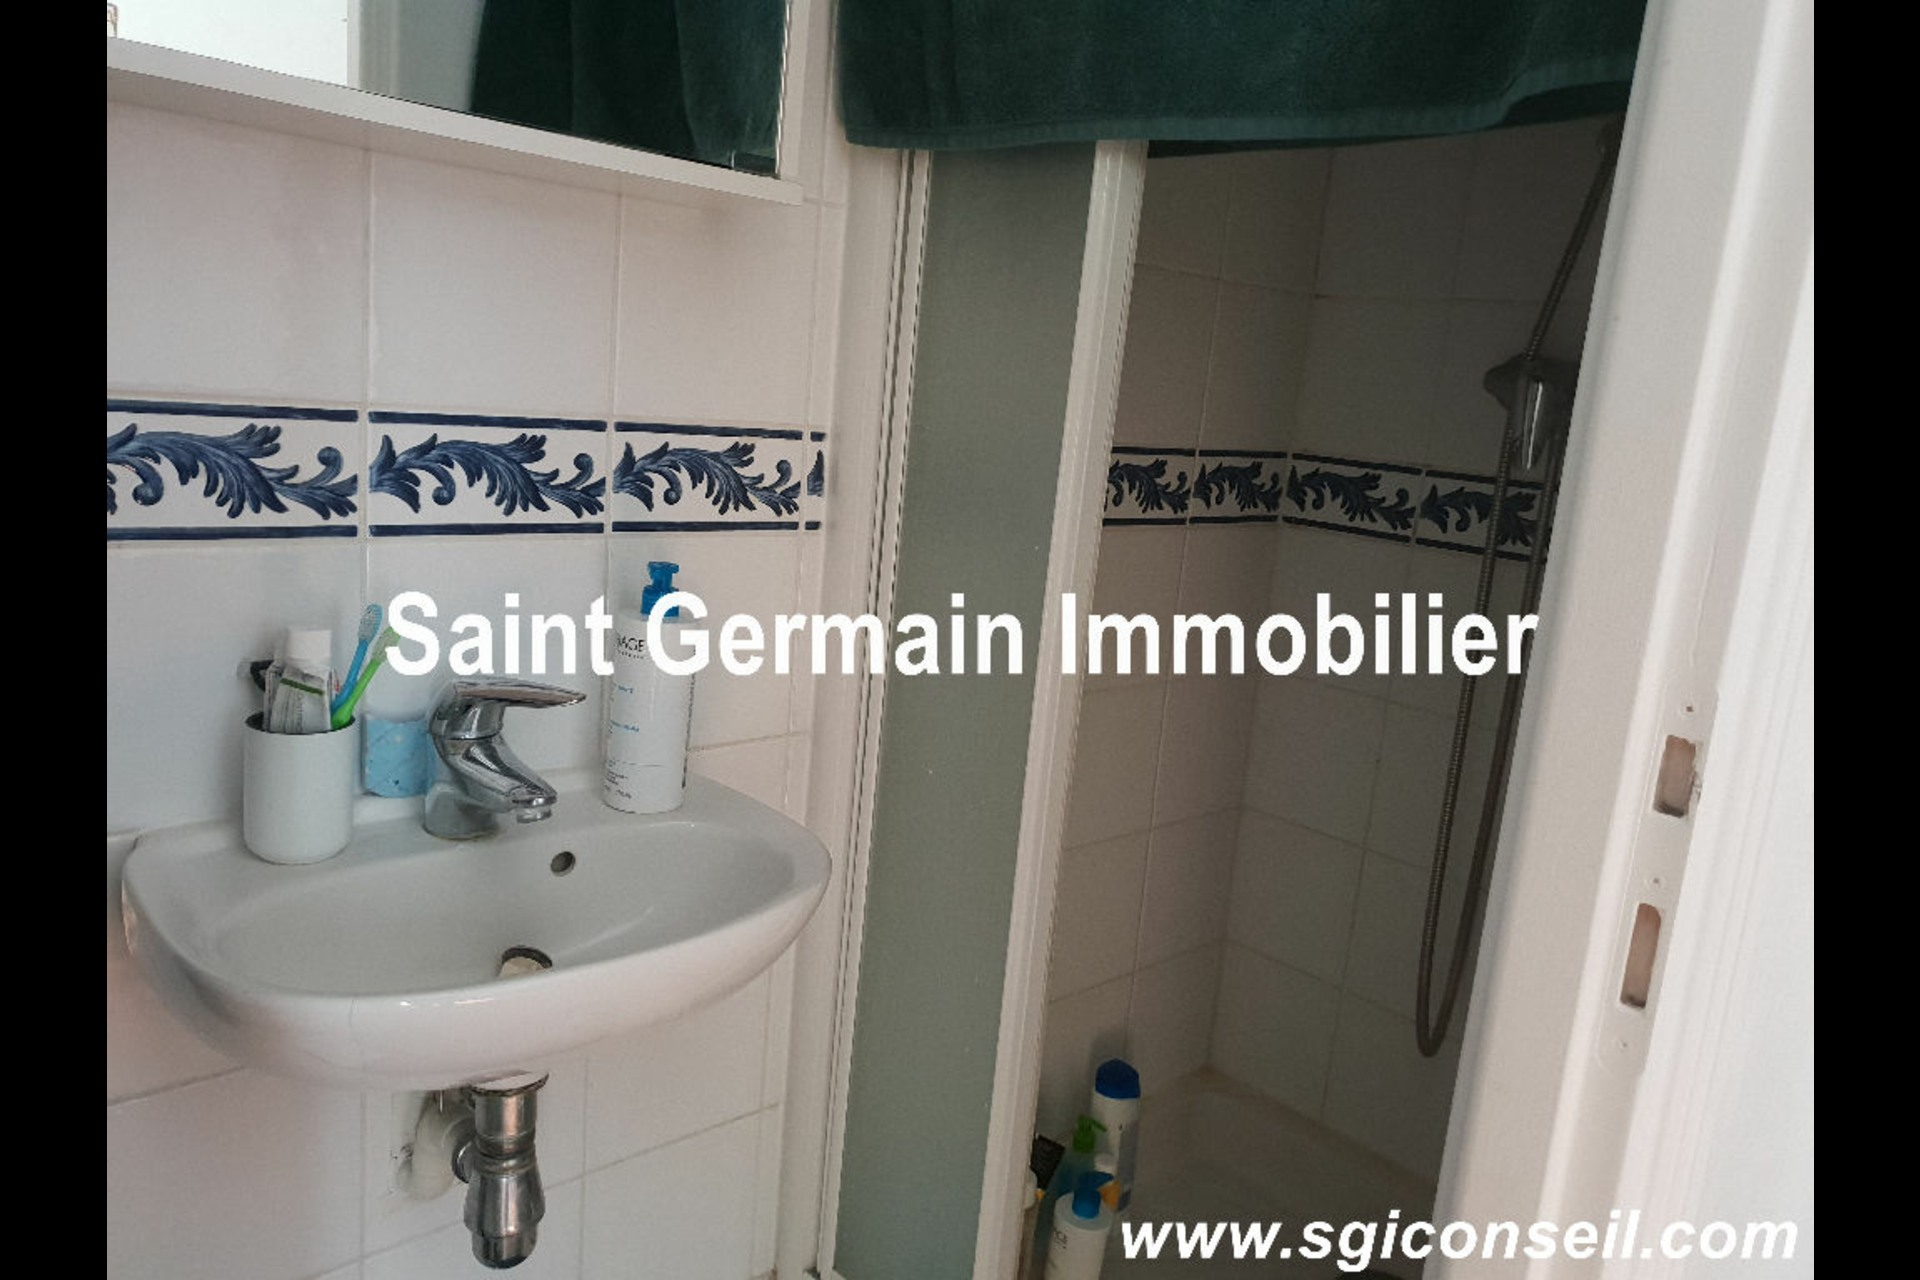 image 5 - Apartment For rent saint germain en laye - 2 rooms